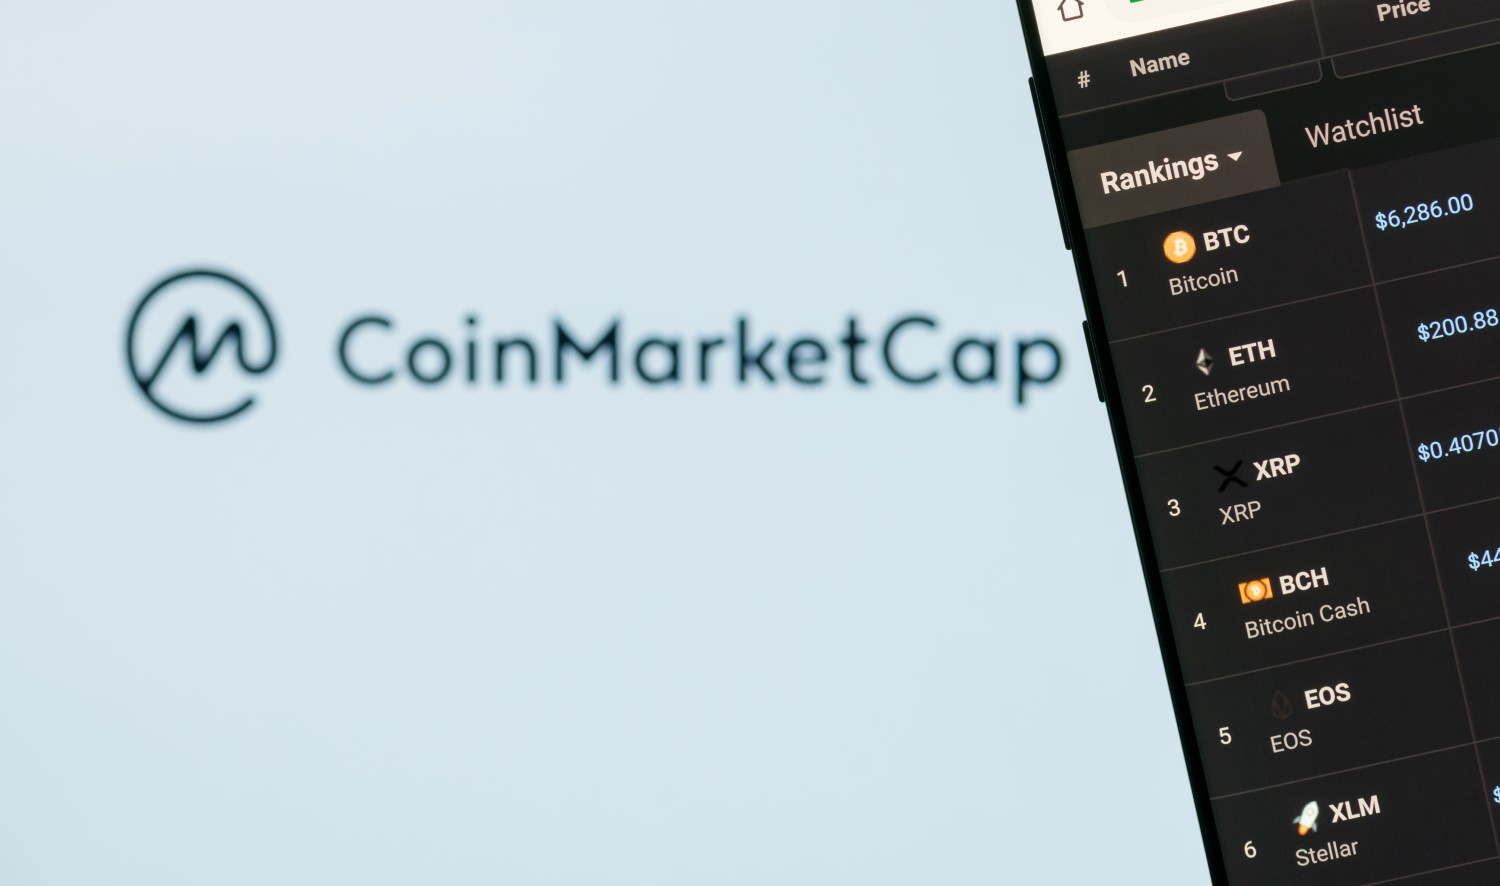 CoinMarketCap Makes First Acquisition to Further Improve